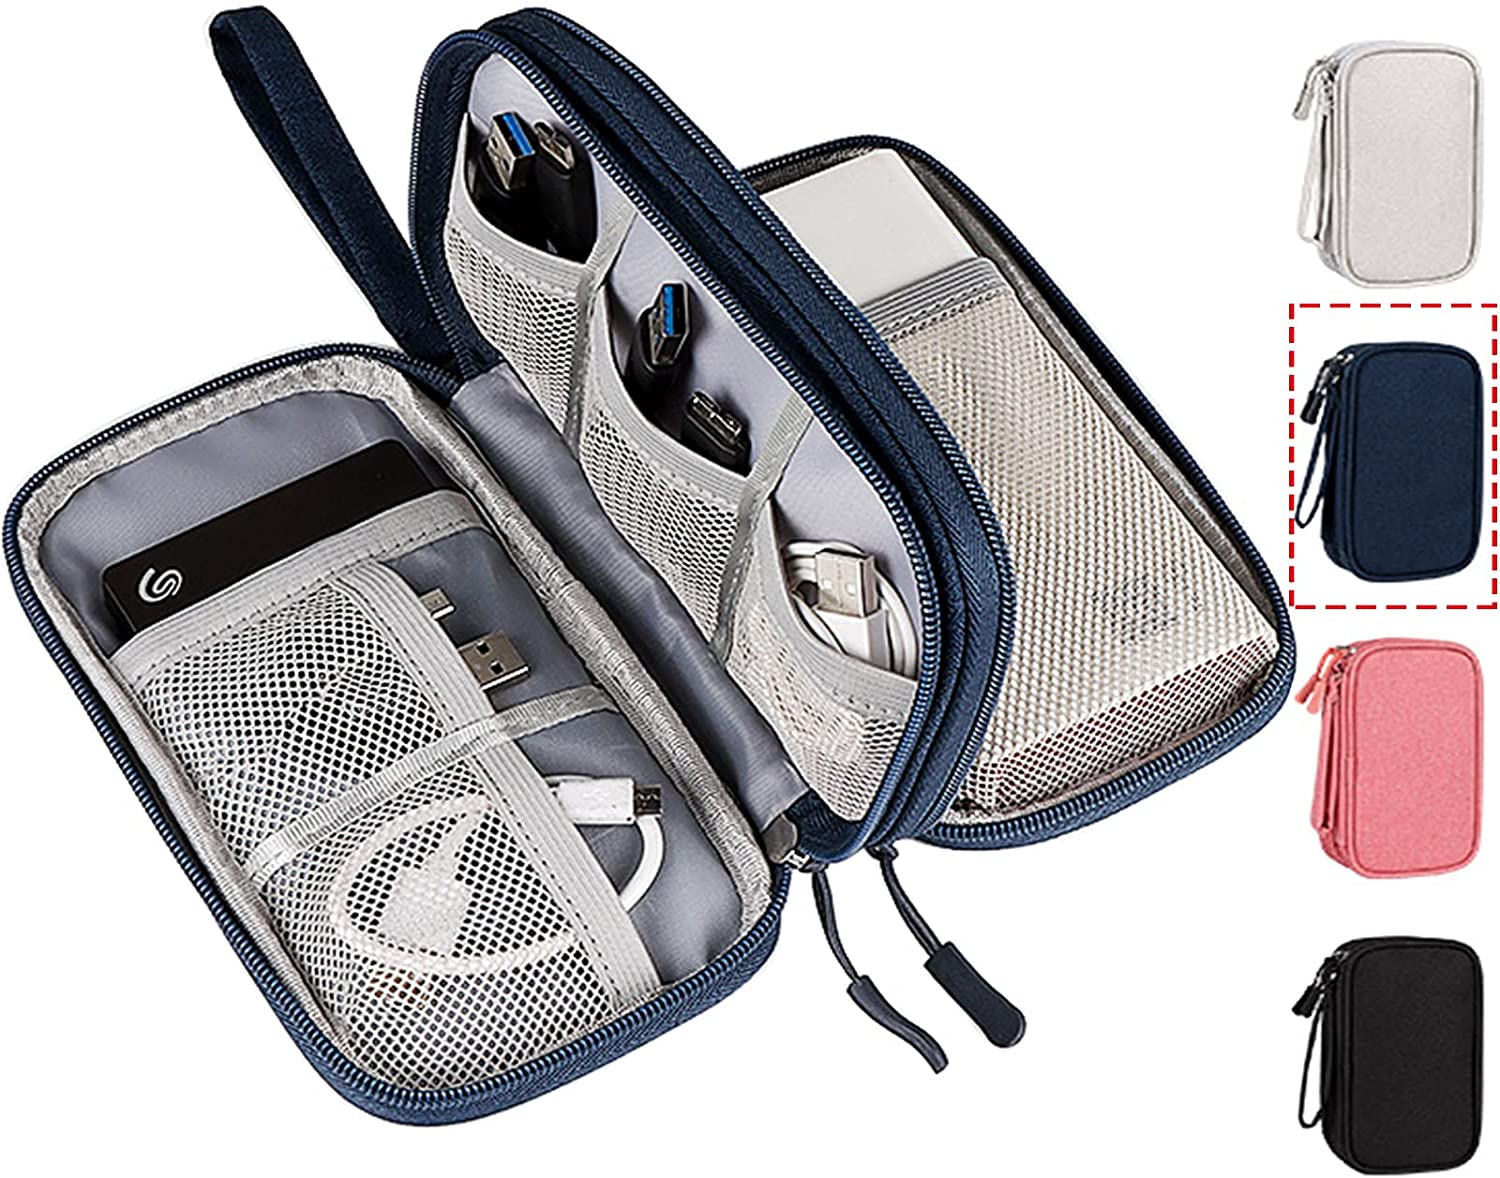 Electronic Accessories Case, Universal Cable Cord Holder Organizer/Electronic Case, Waterproof Portable Cable Organizer Bag, USB Flash Drives Bag, Cable case Bag, USB Case Organizer,USB Charger Bag